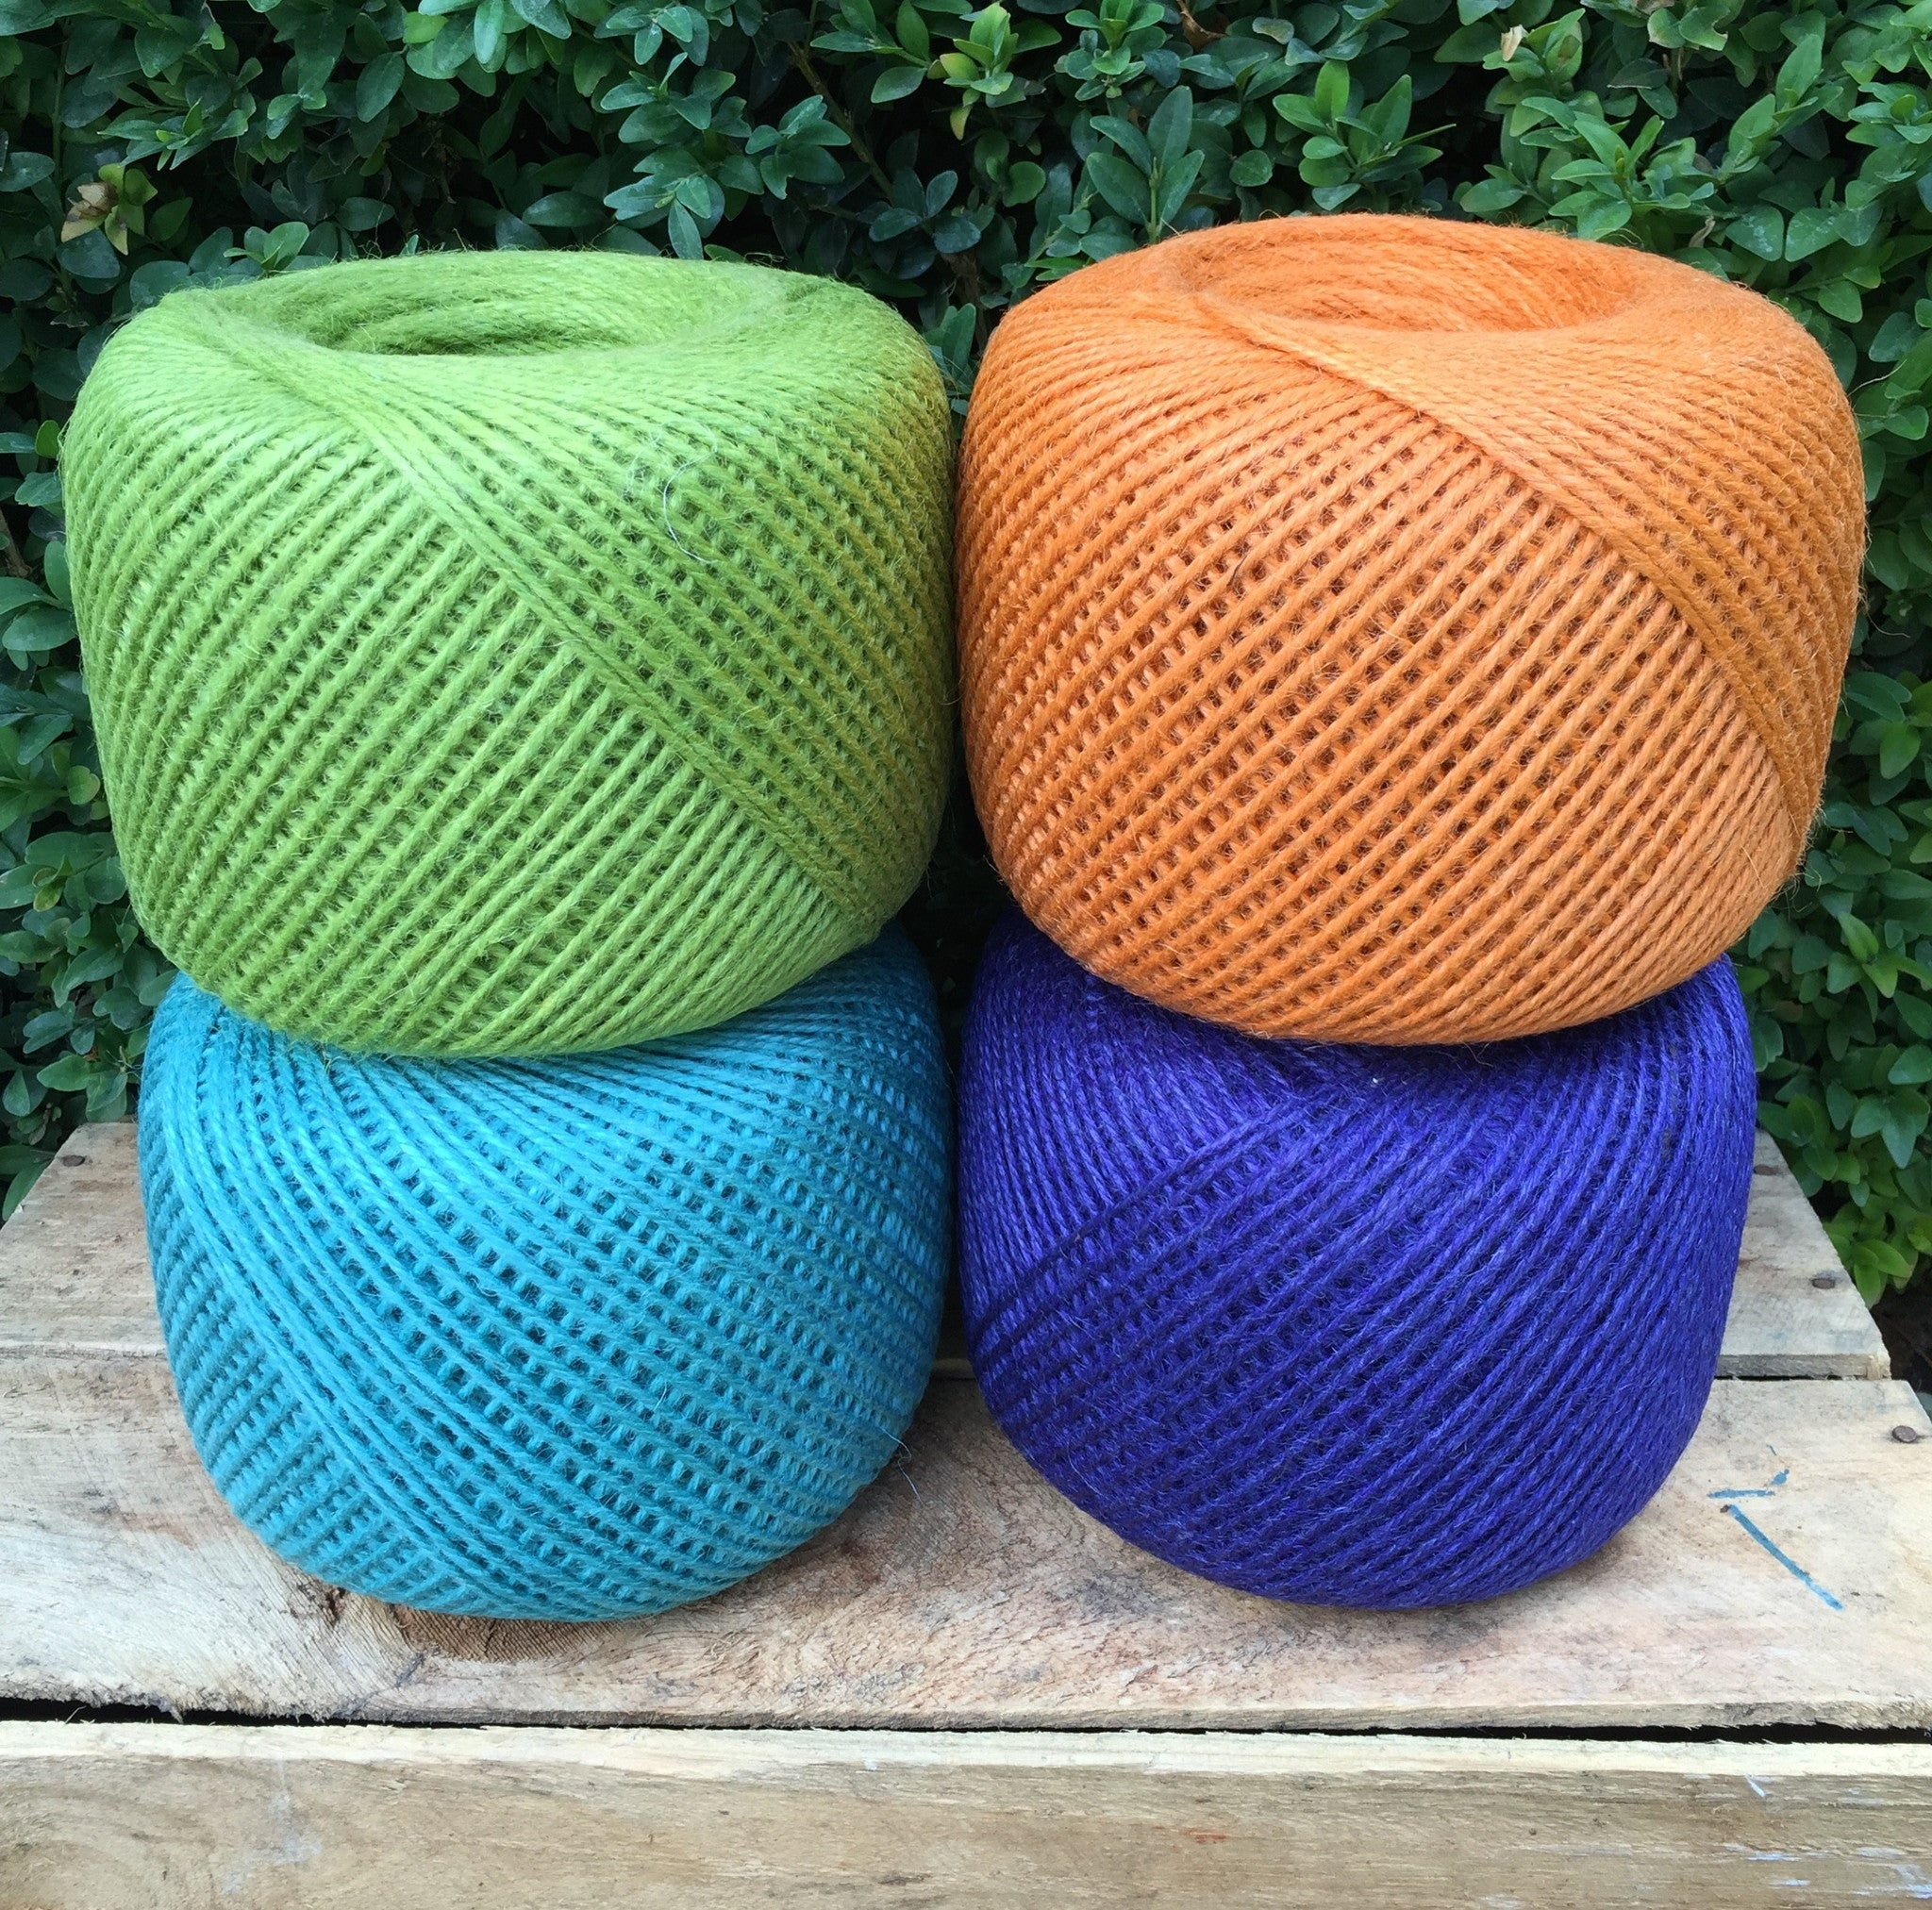 One Kilo Twine Ball - The Potting Shed Garden Tools